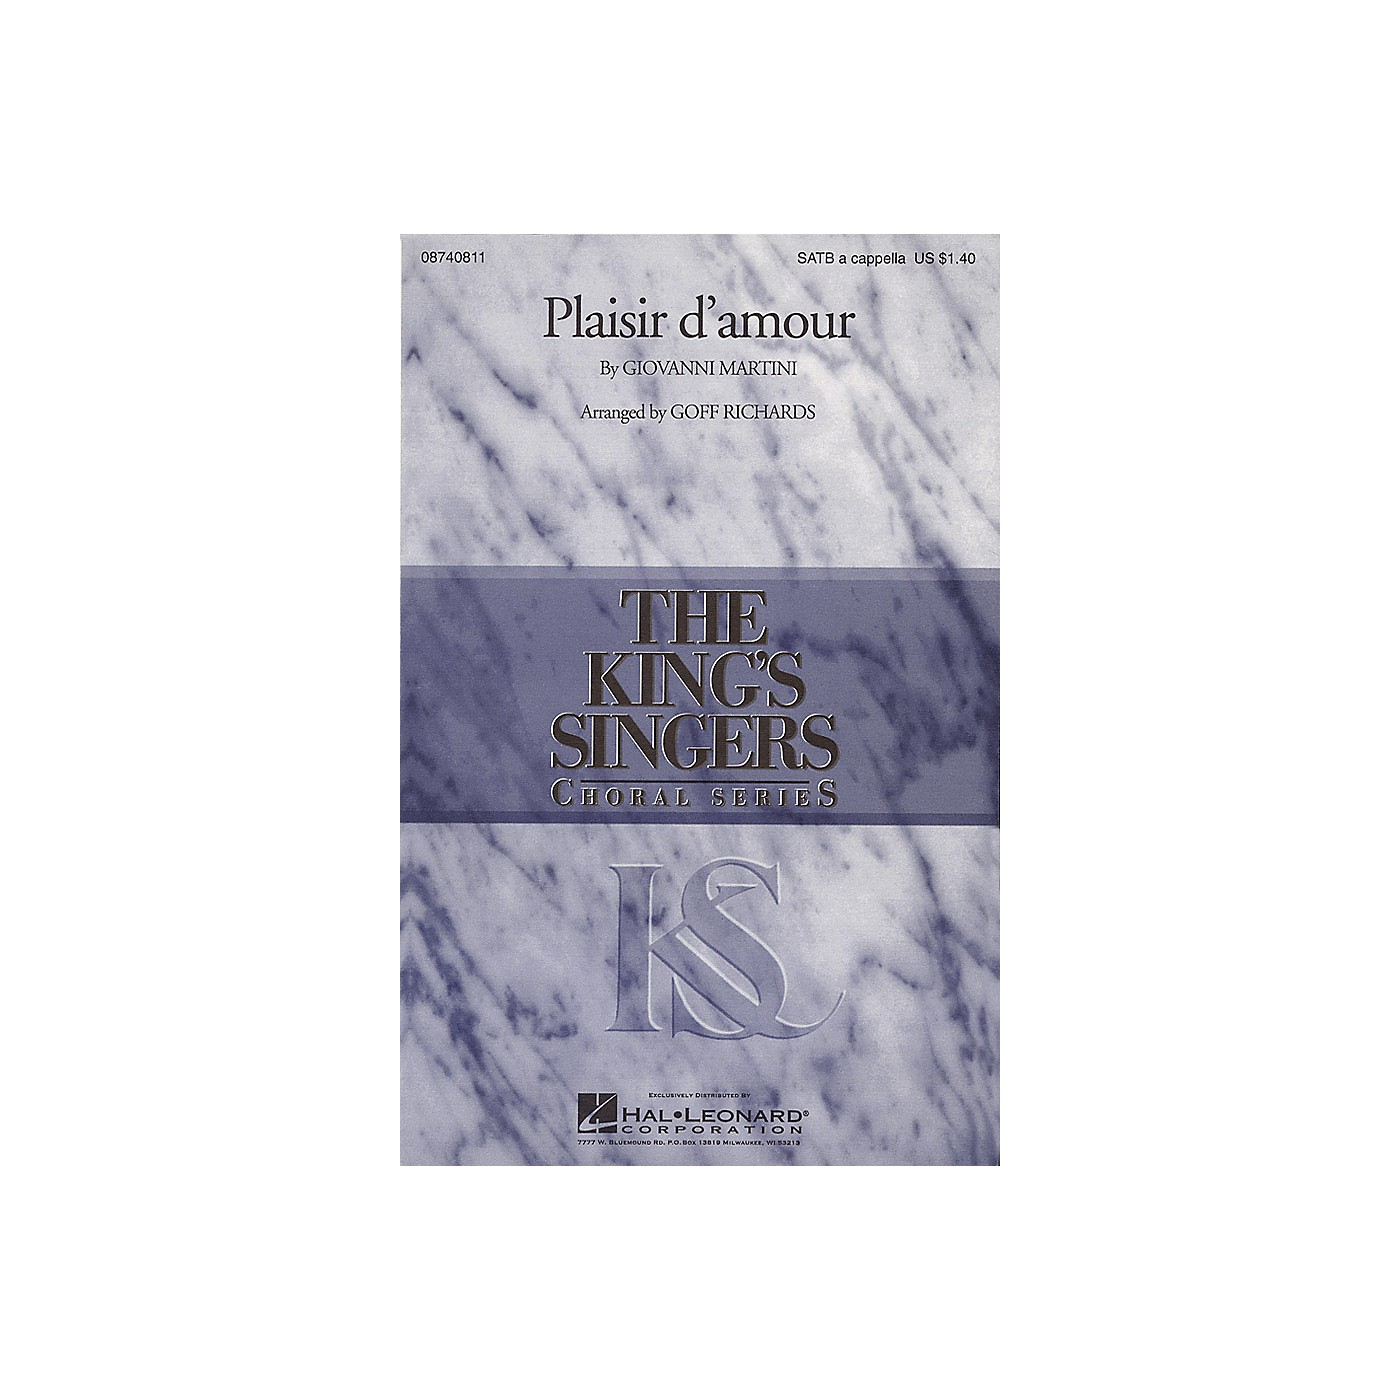 Hal Leonard Plaisir d'Amour SATB a cappella by The King's Singers arranged by Goff Richards thumbnail